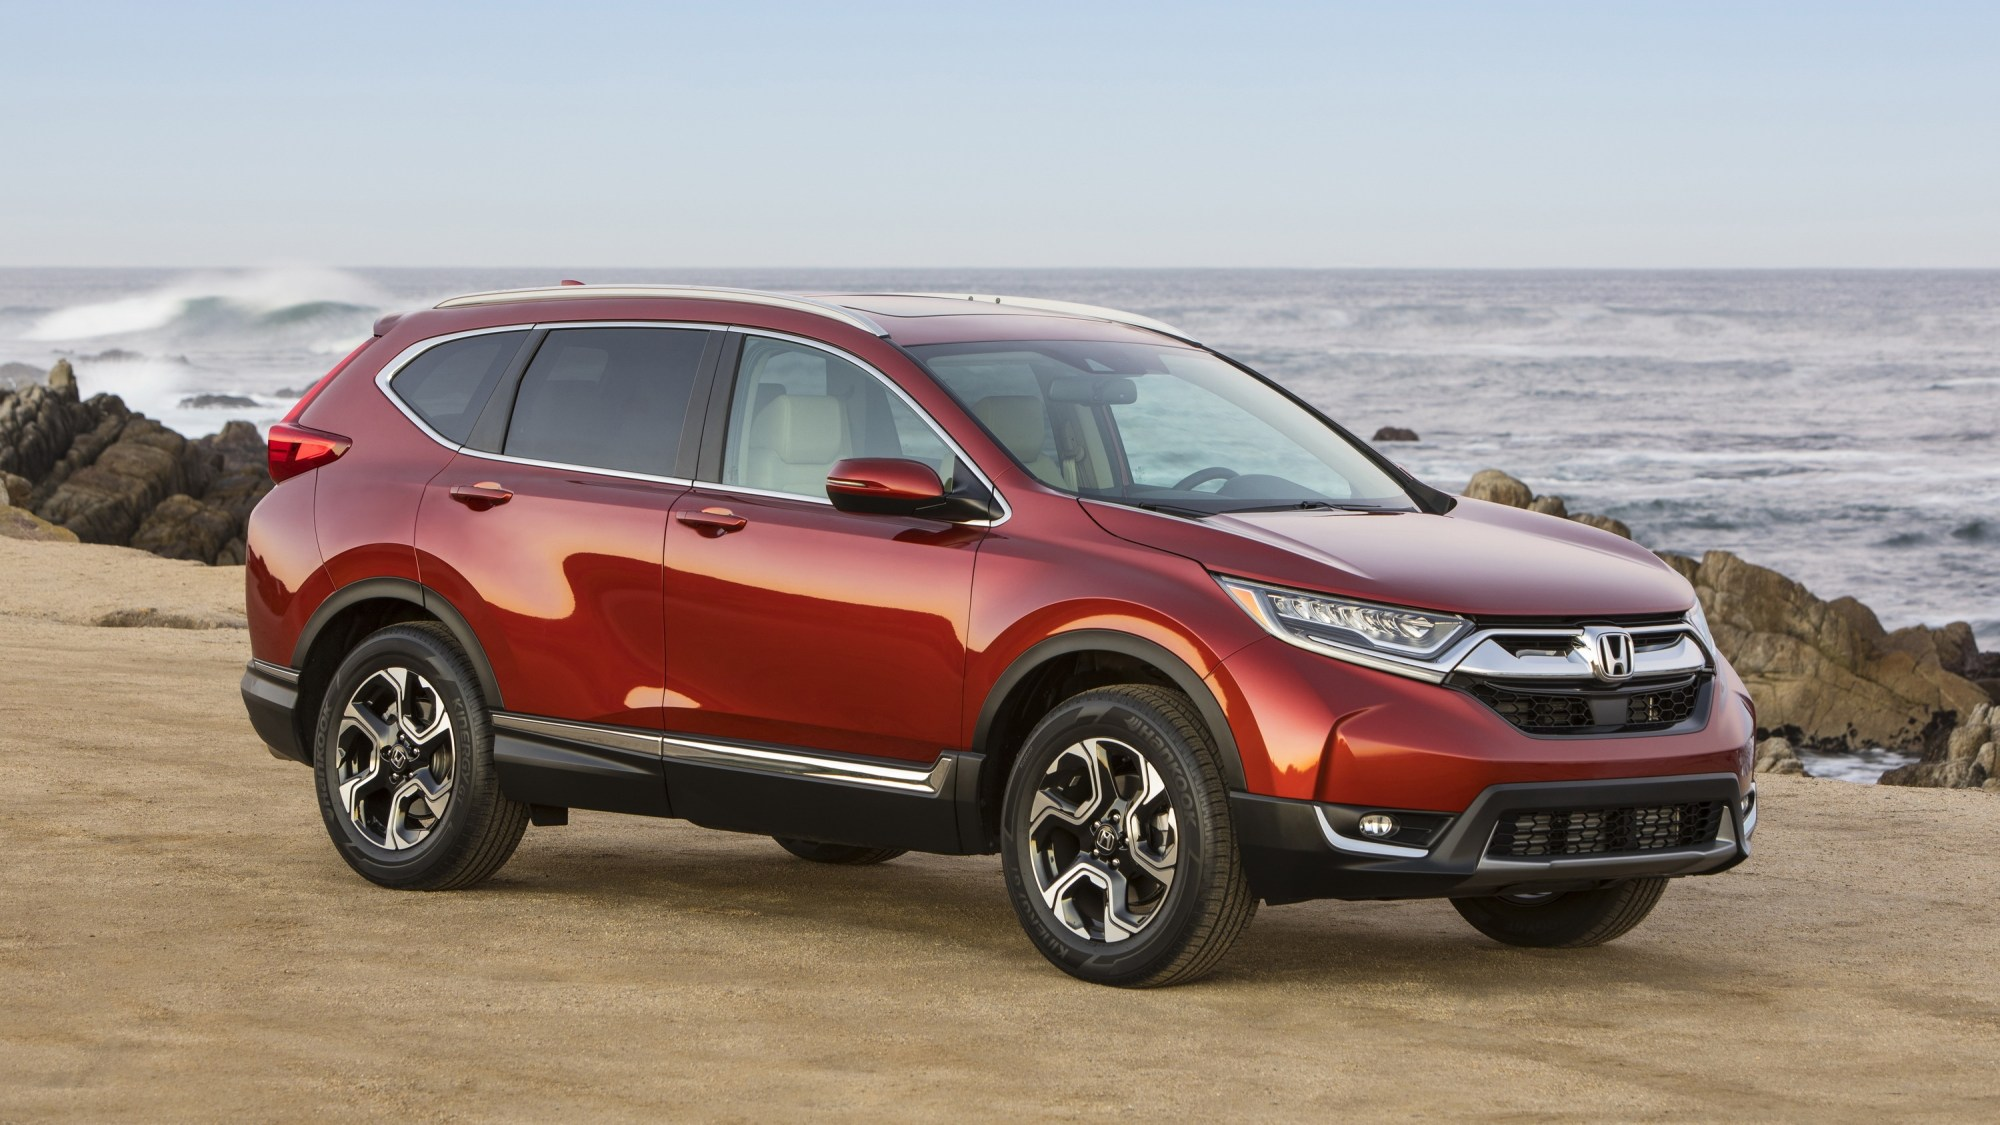 hight resolution of honda cr v reviews specs prices photos and videos top speed